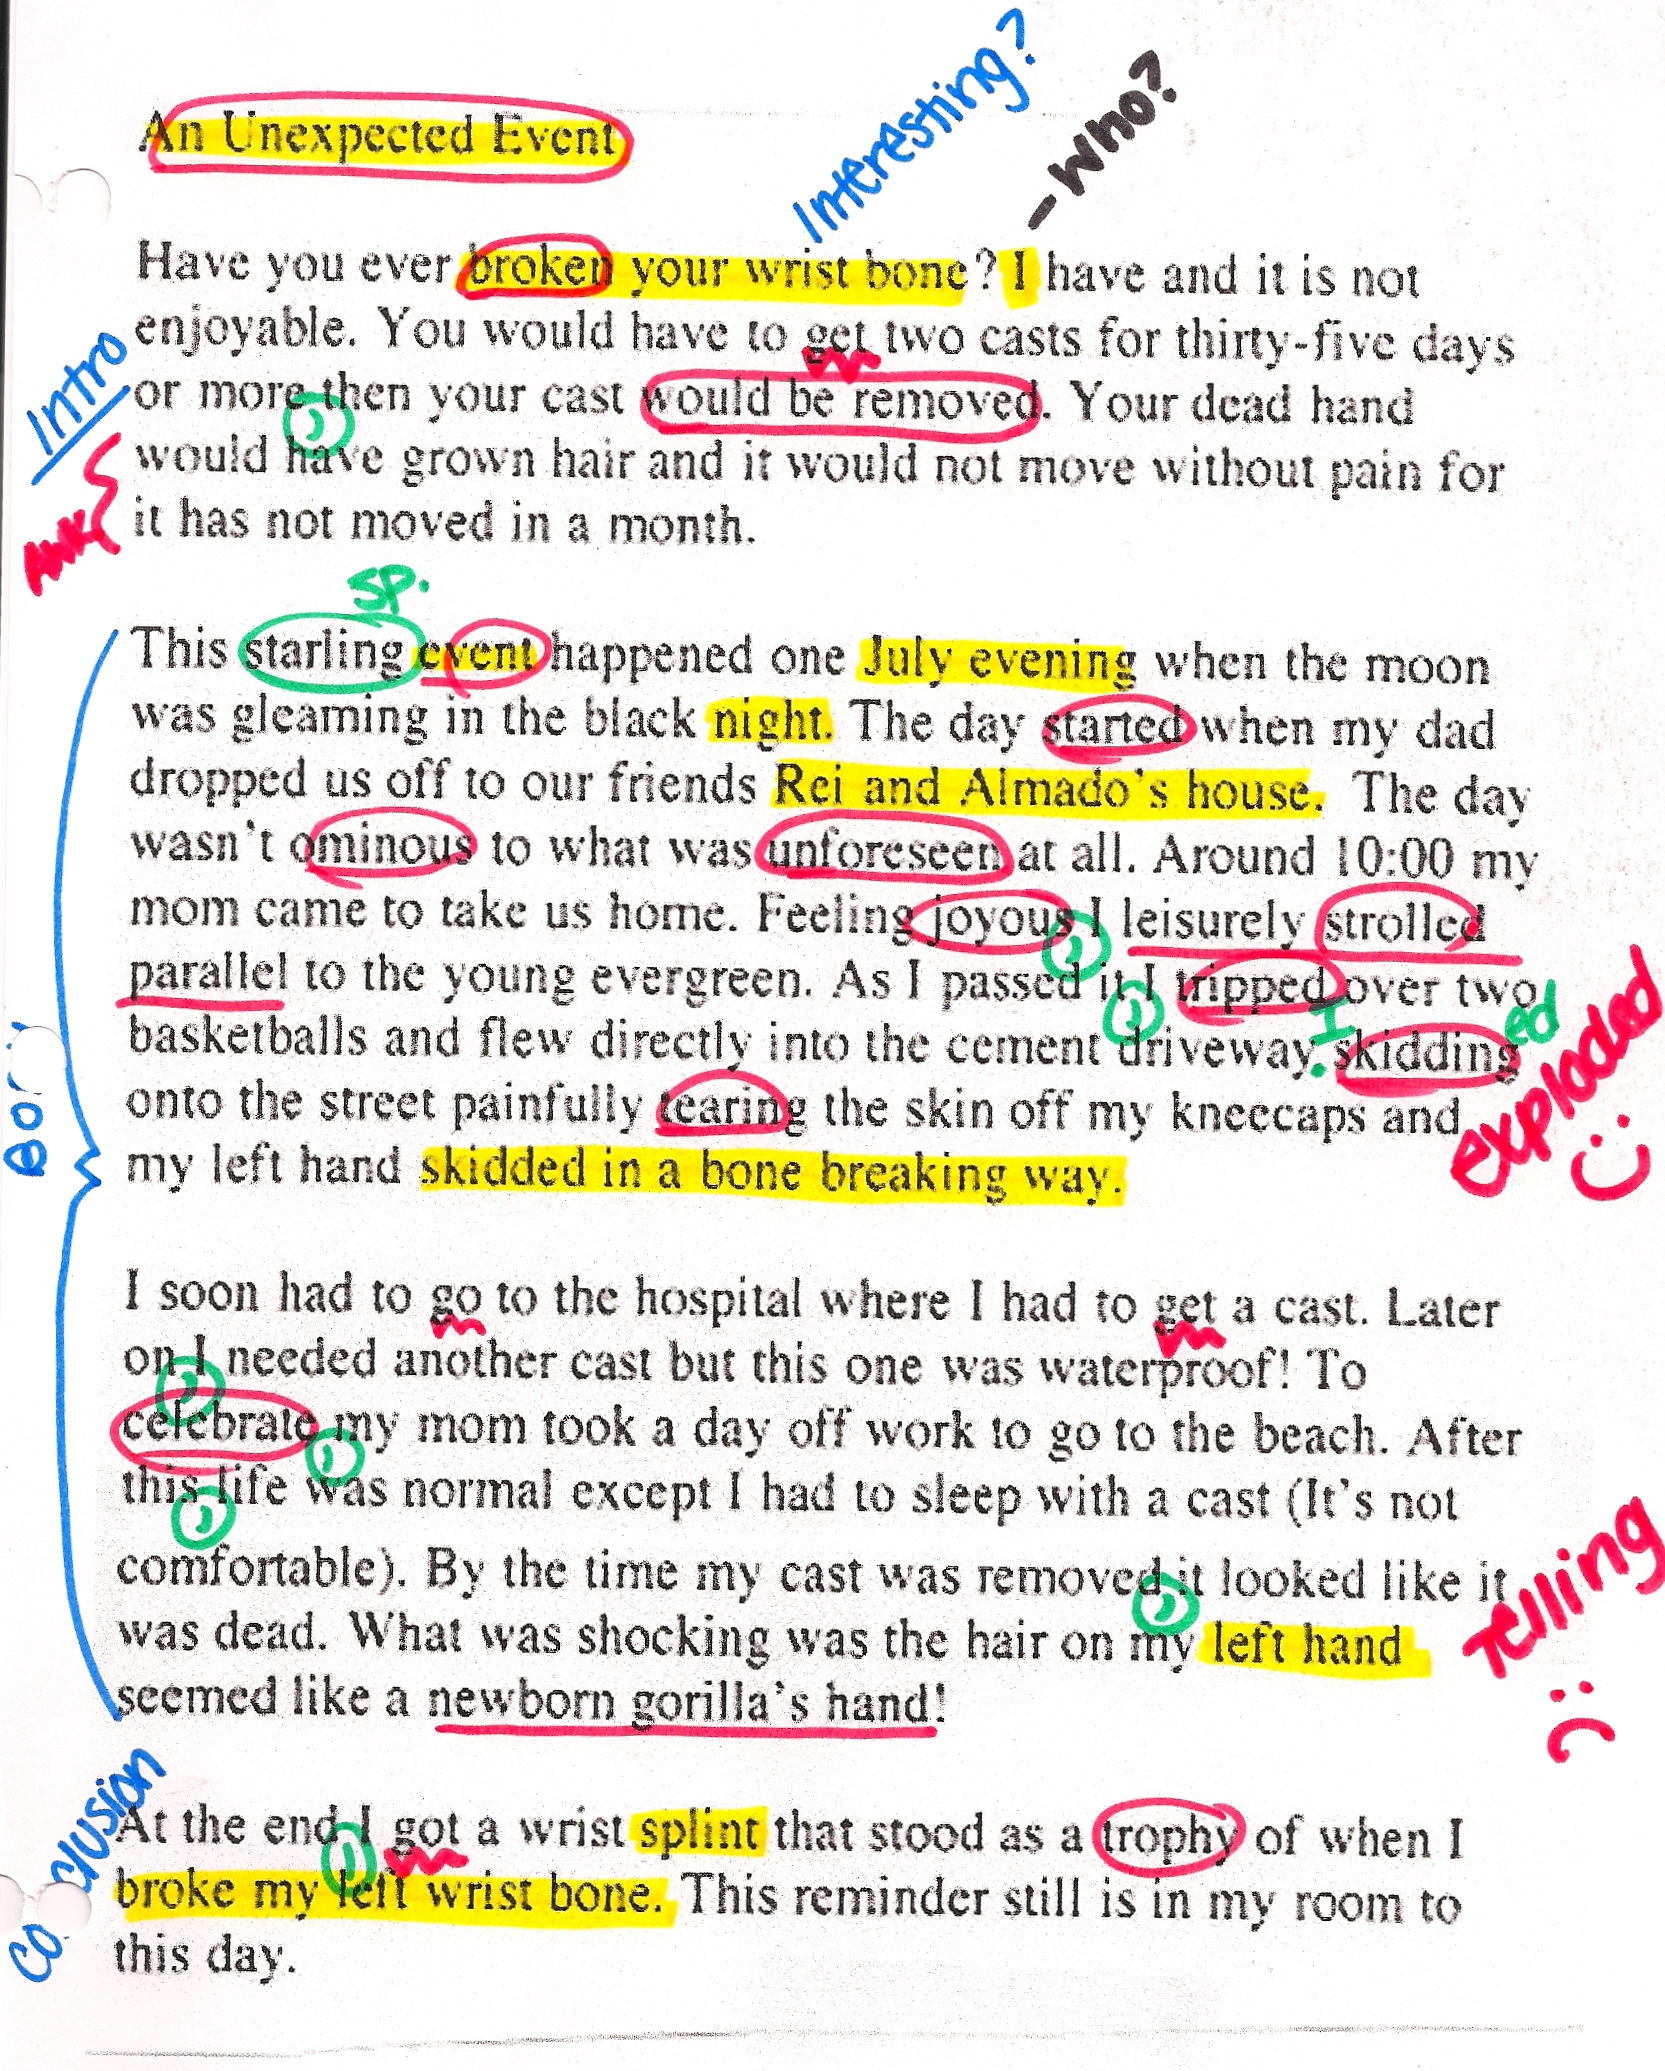 005 English Writing Sample Essays Essay Example Unexpected Event Striking Creative Full